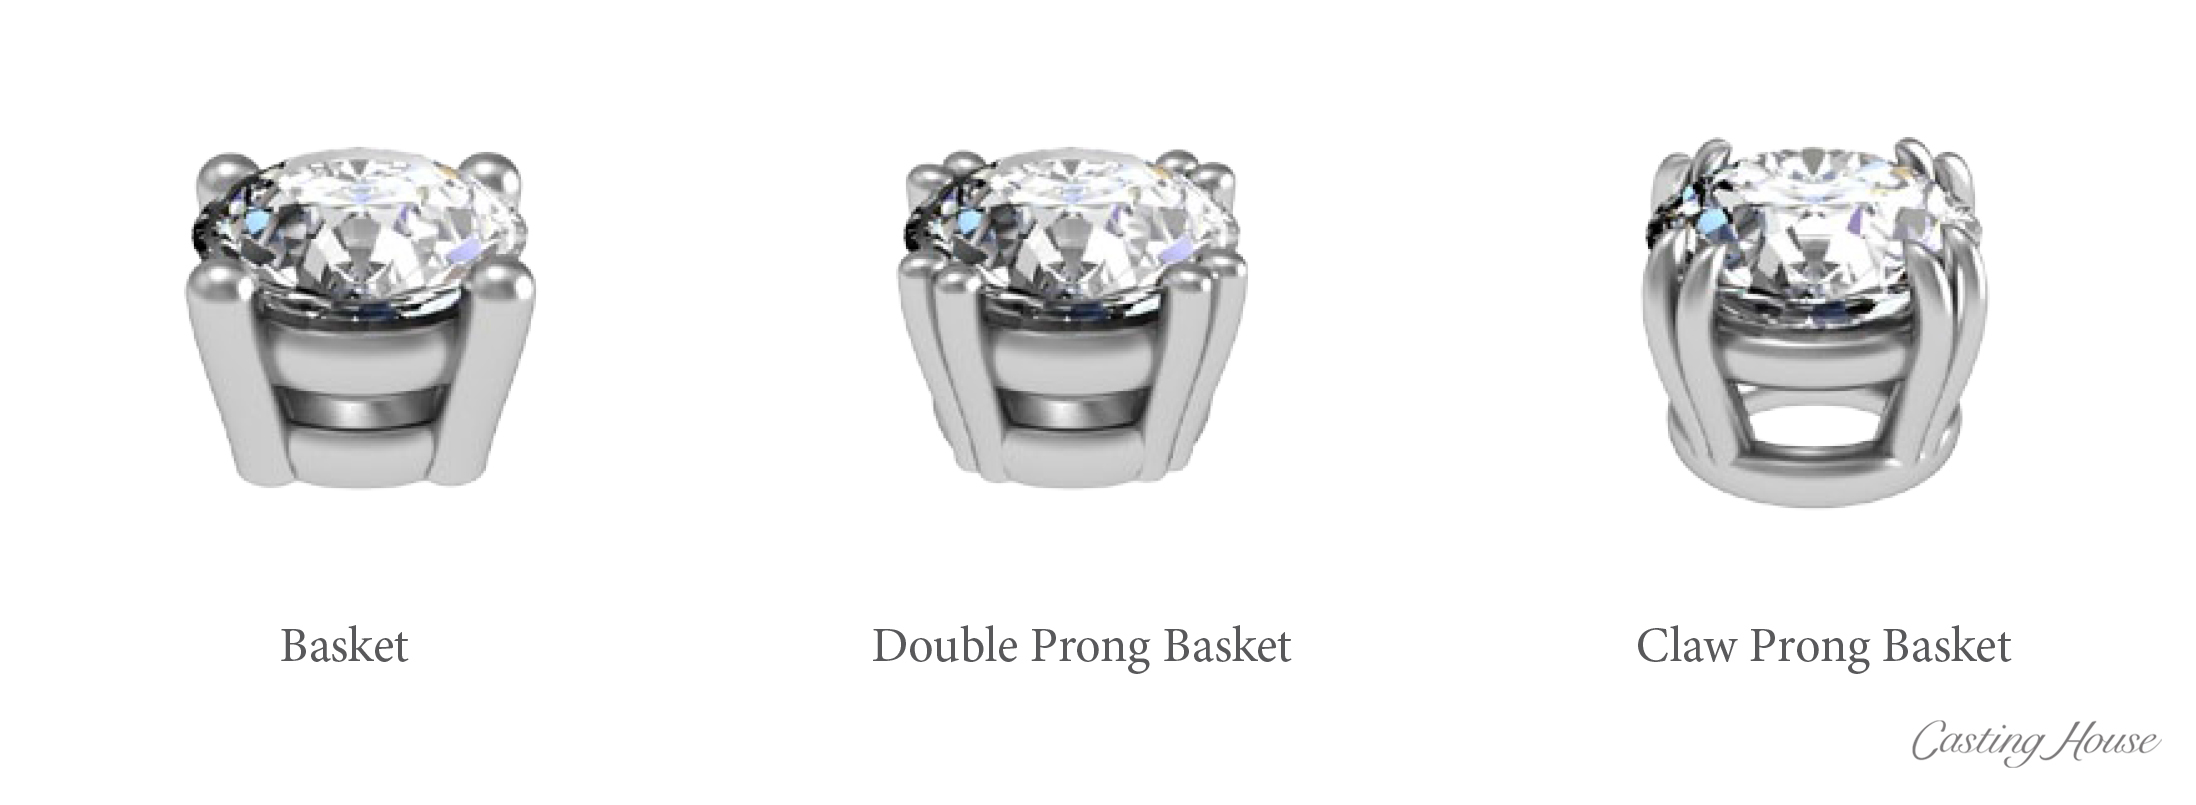 Custom Jewelry And Ring Design Styles